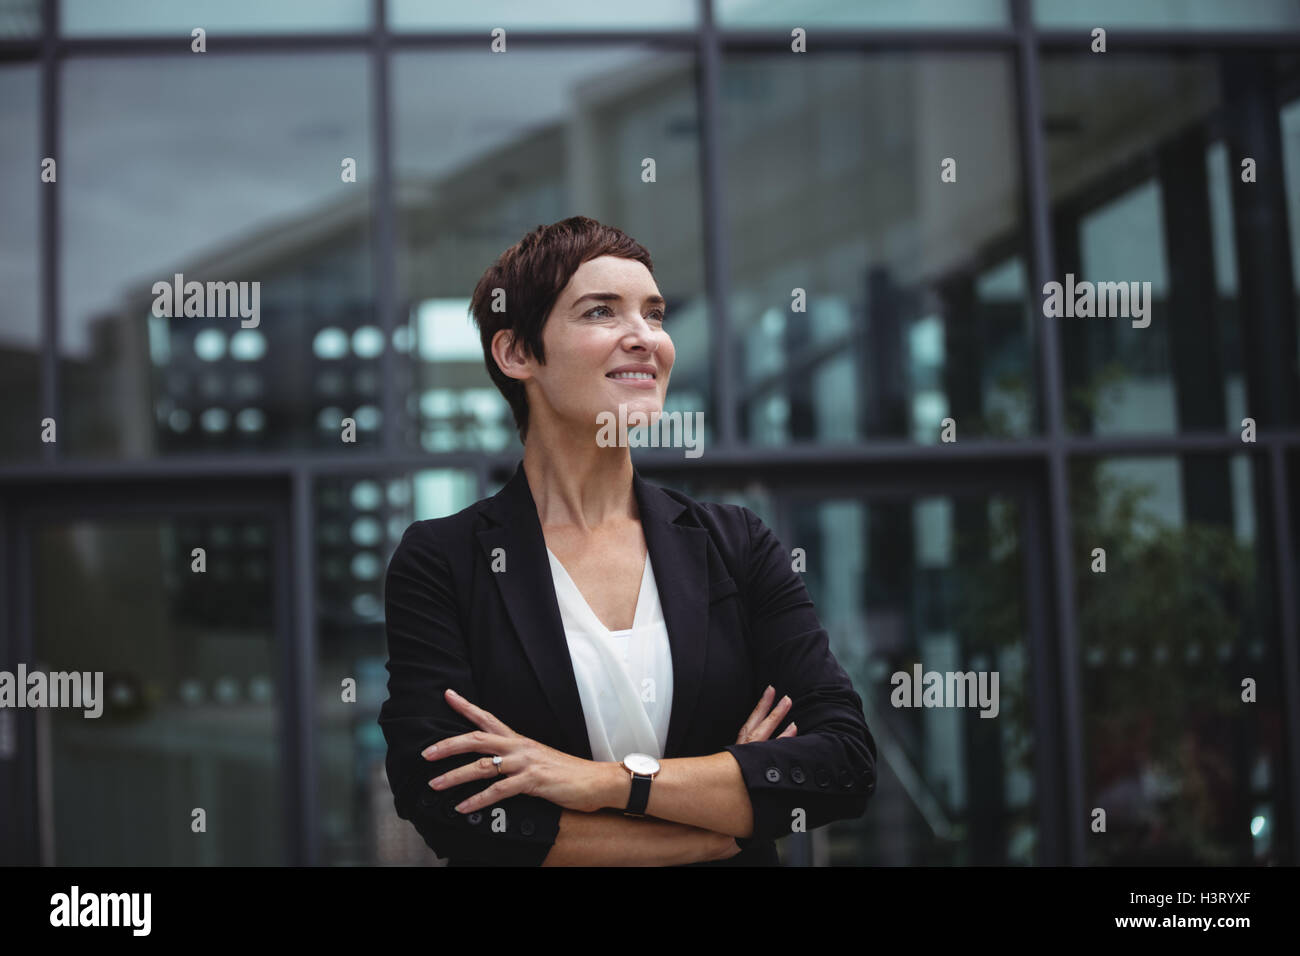 Smiling businesswoman standing in office premises Stock Photo